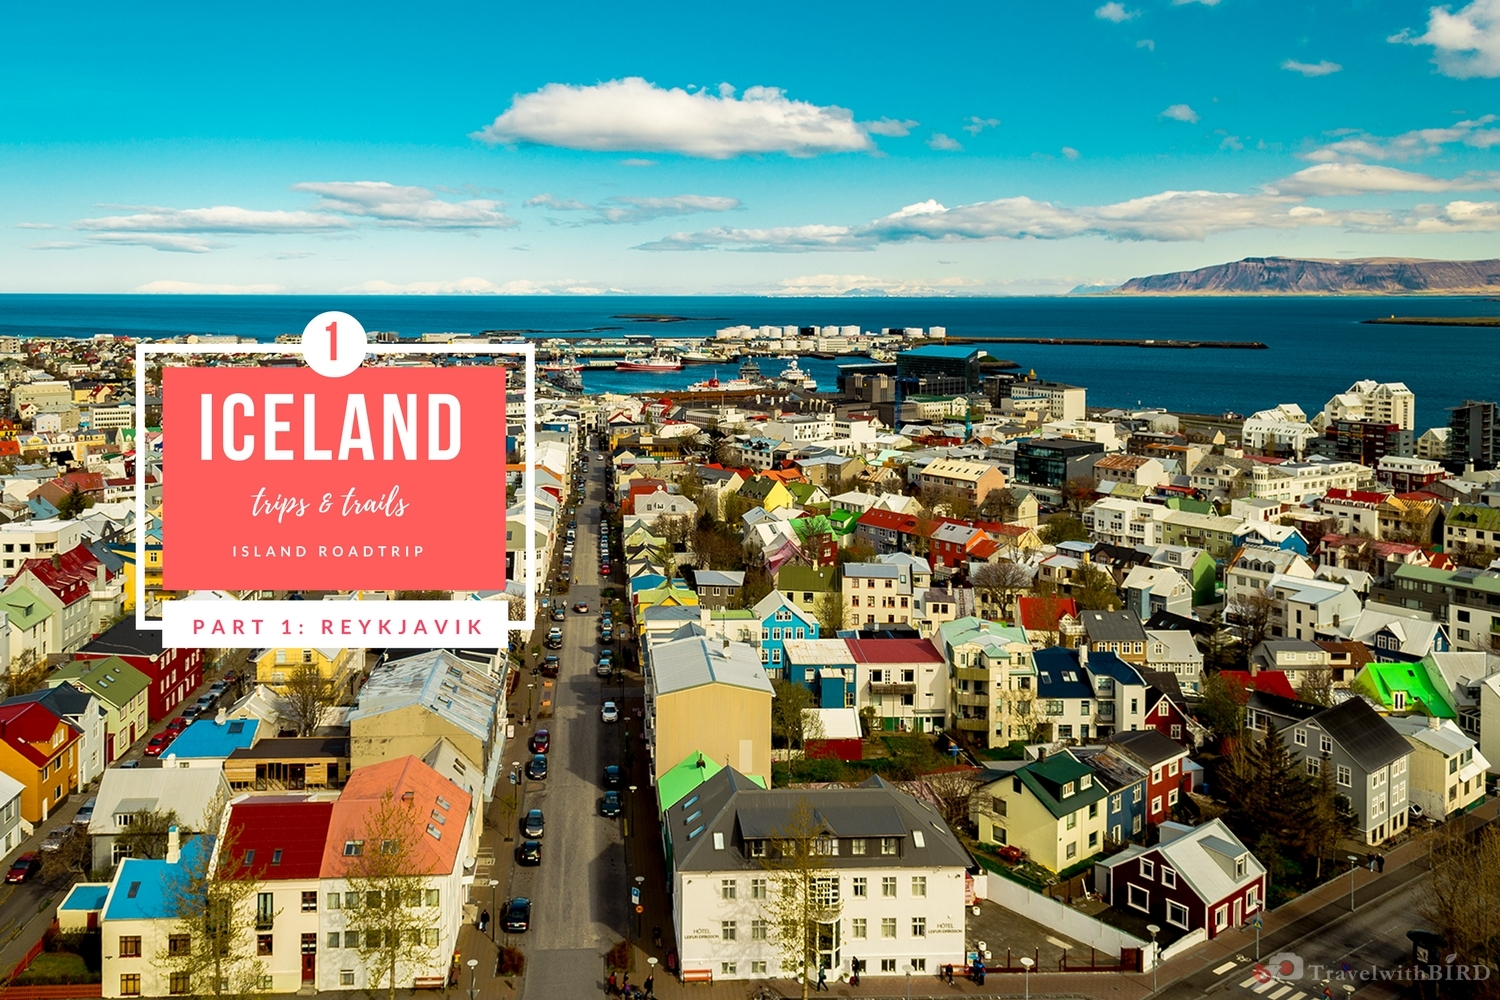 Reykjavik attractions: Iceland road trip in 7 days